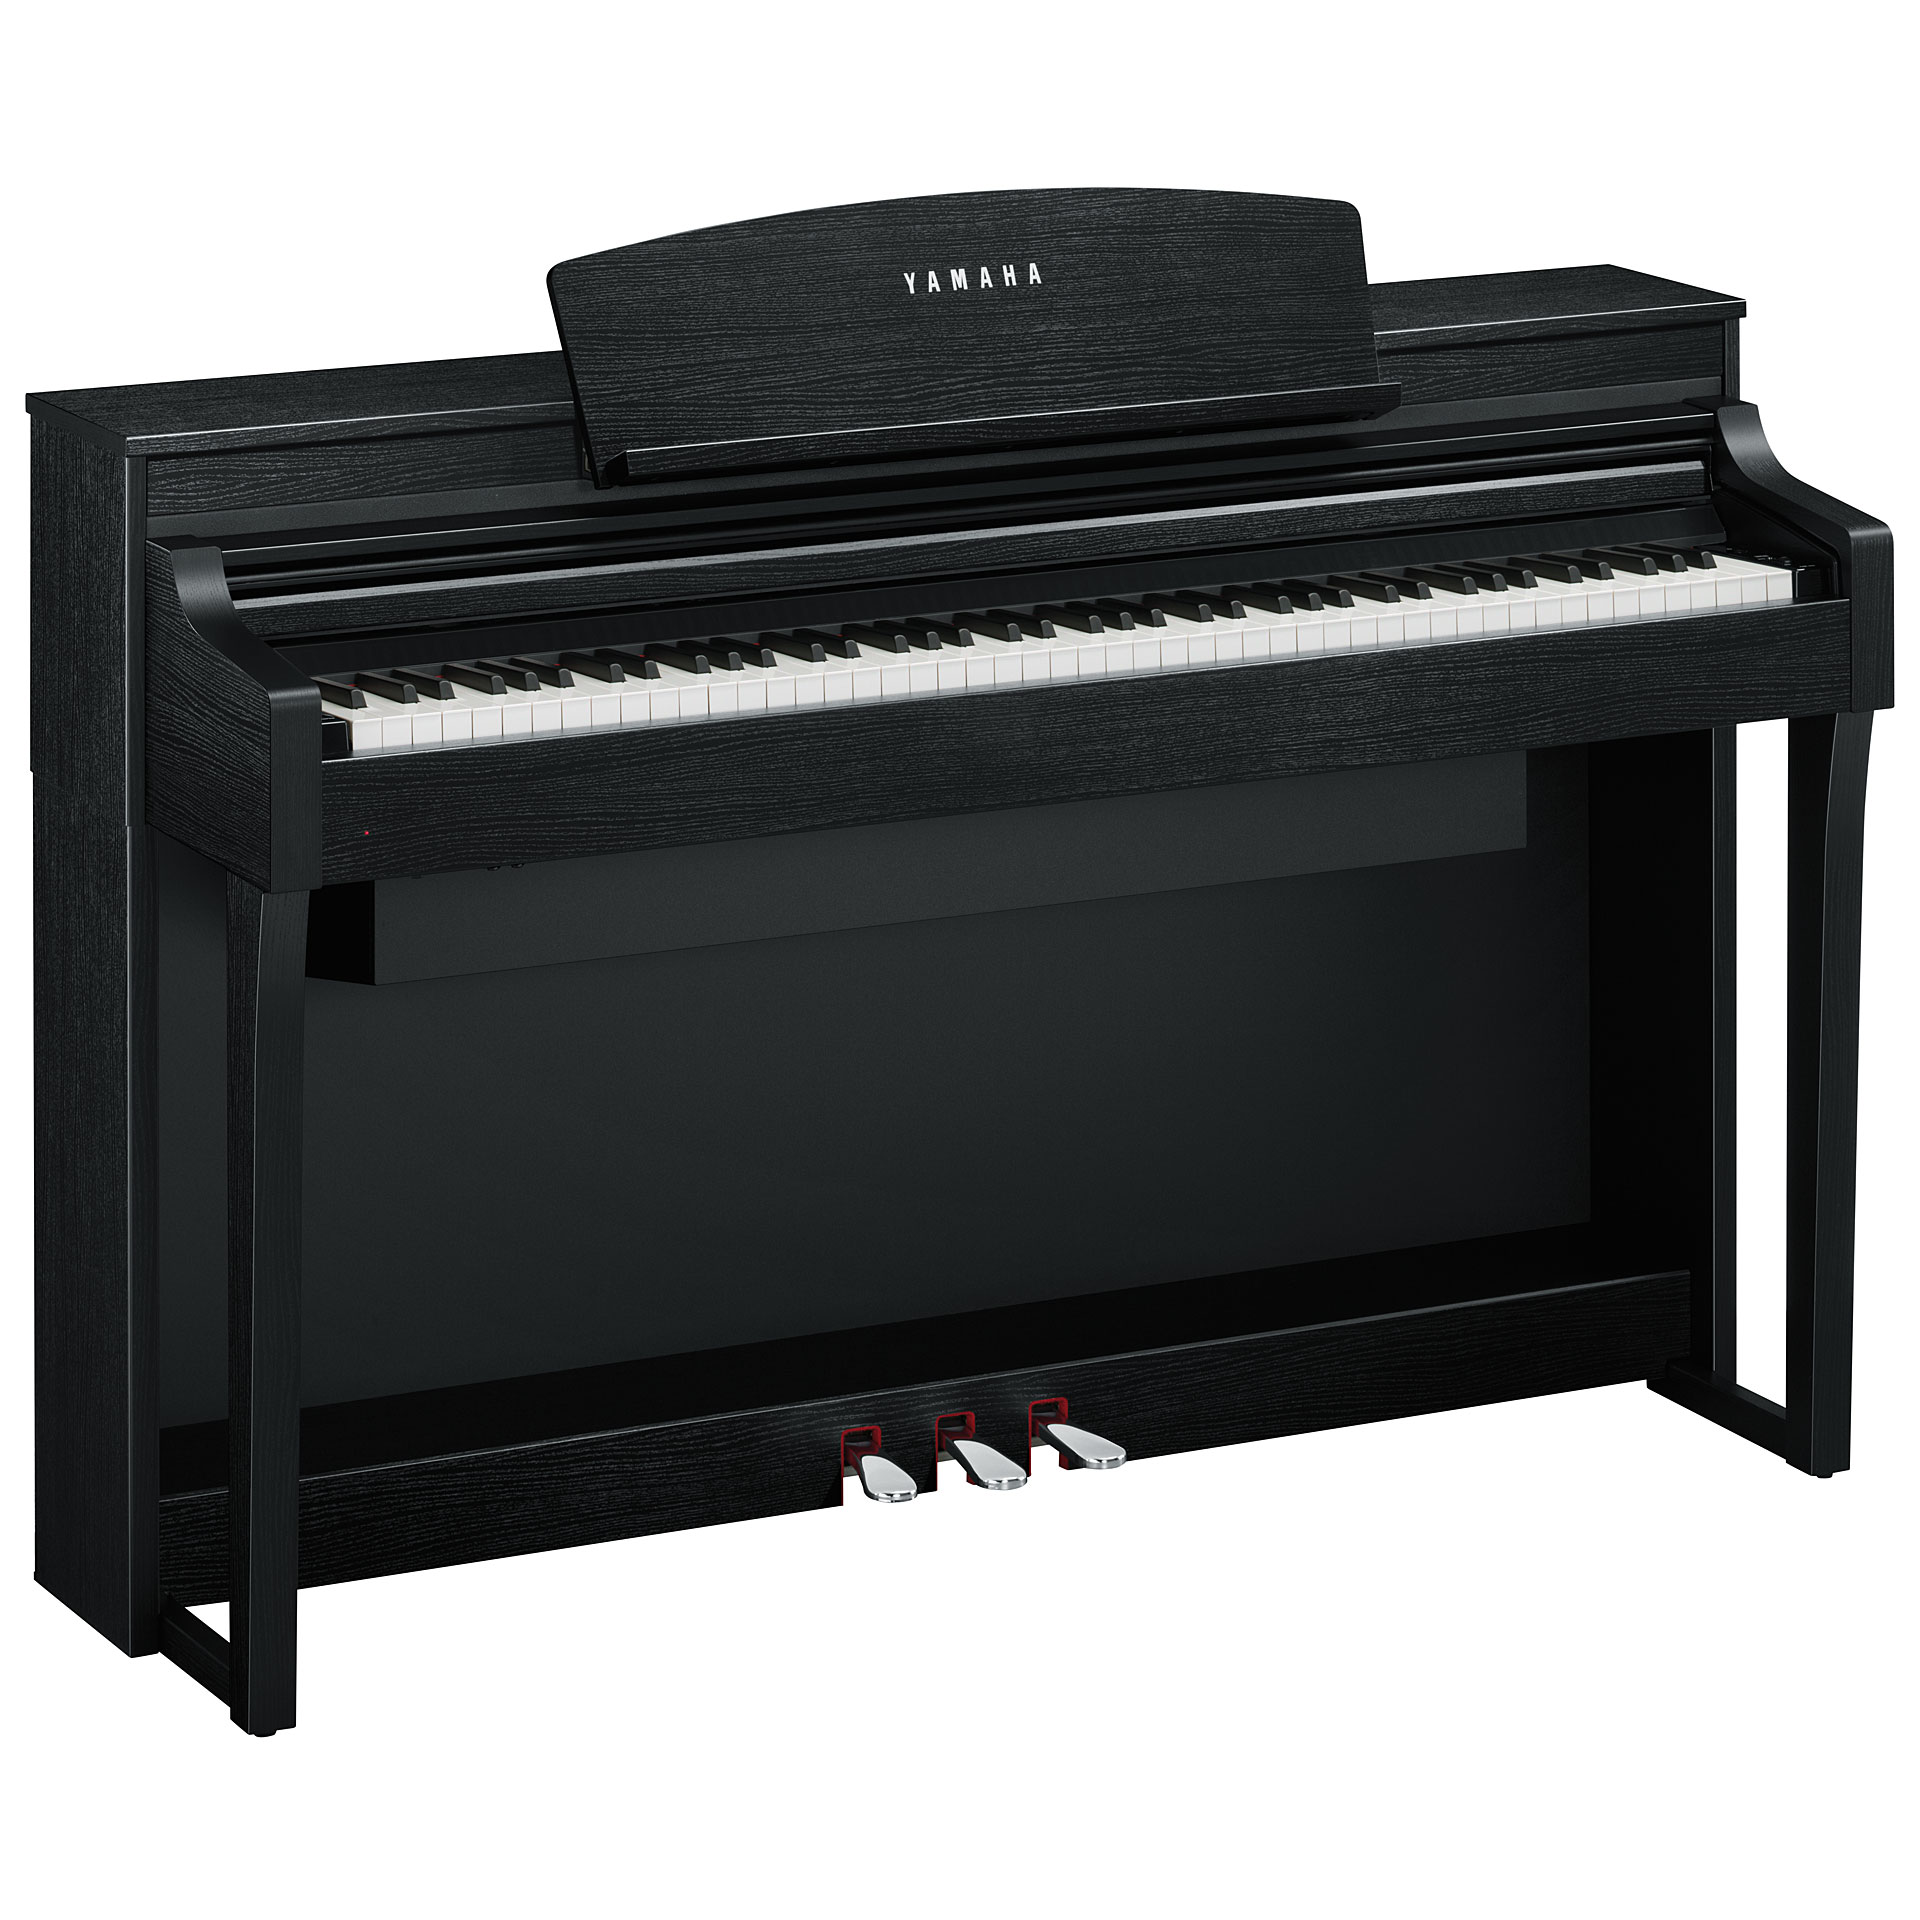 yamaha clavinova csp 170 b digital piano. Black Bedroom Furniture Sets. Home Design Ideas